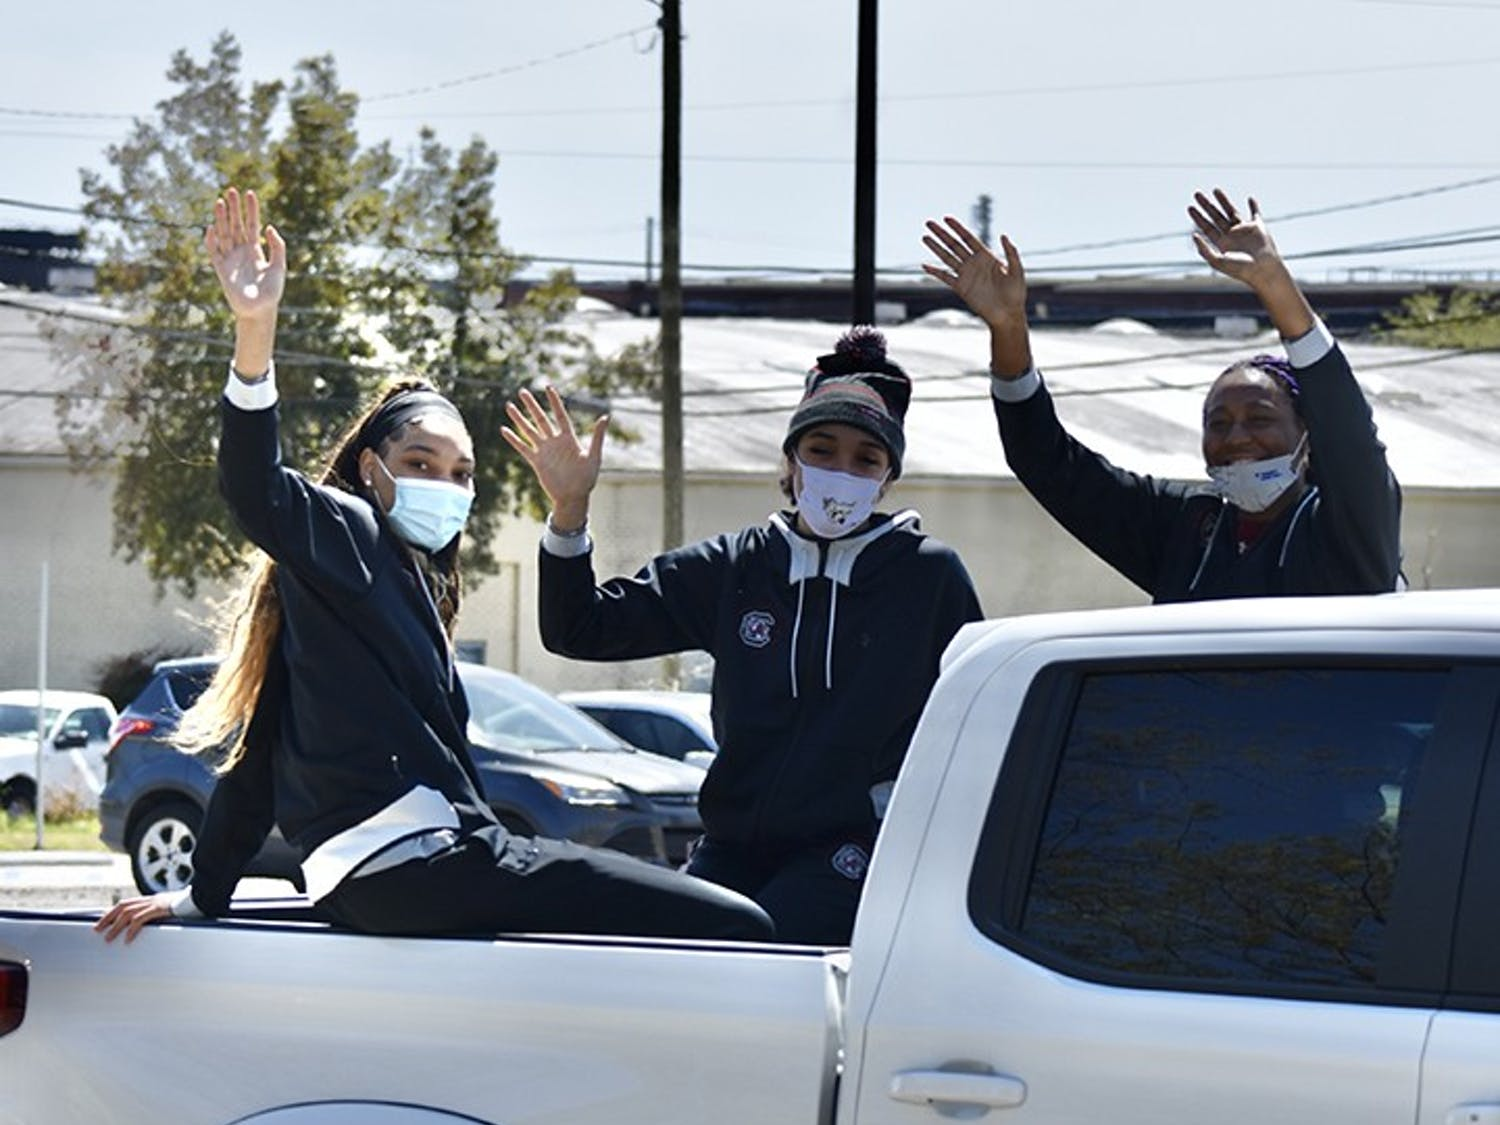 Junior forward Victaria Saxton, sophomore guard Brea Beal and sophomore forward Aliyah Boston wave at fans from the back of a truck that drove them in a procession-like fashion around the Colonial Life Arena parking lot.